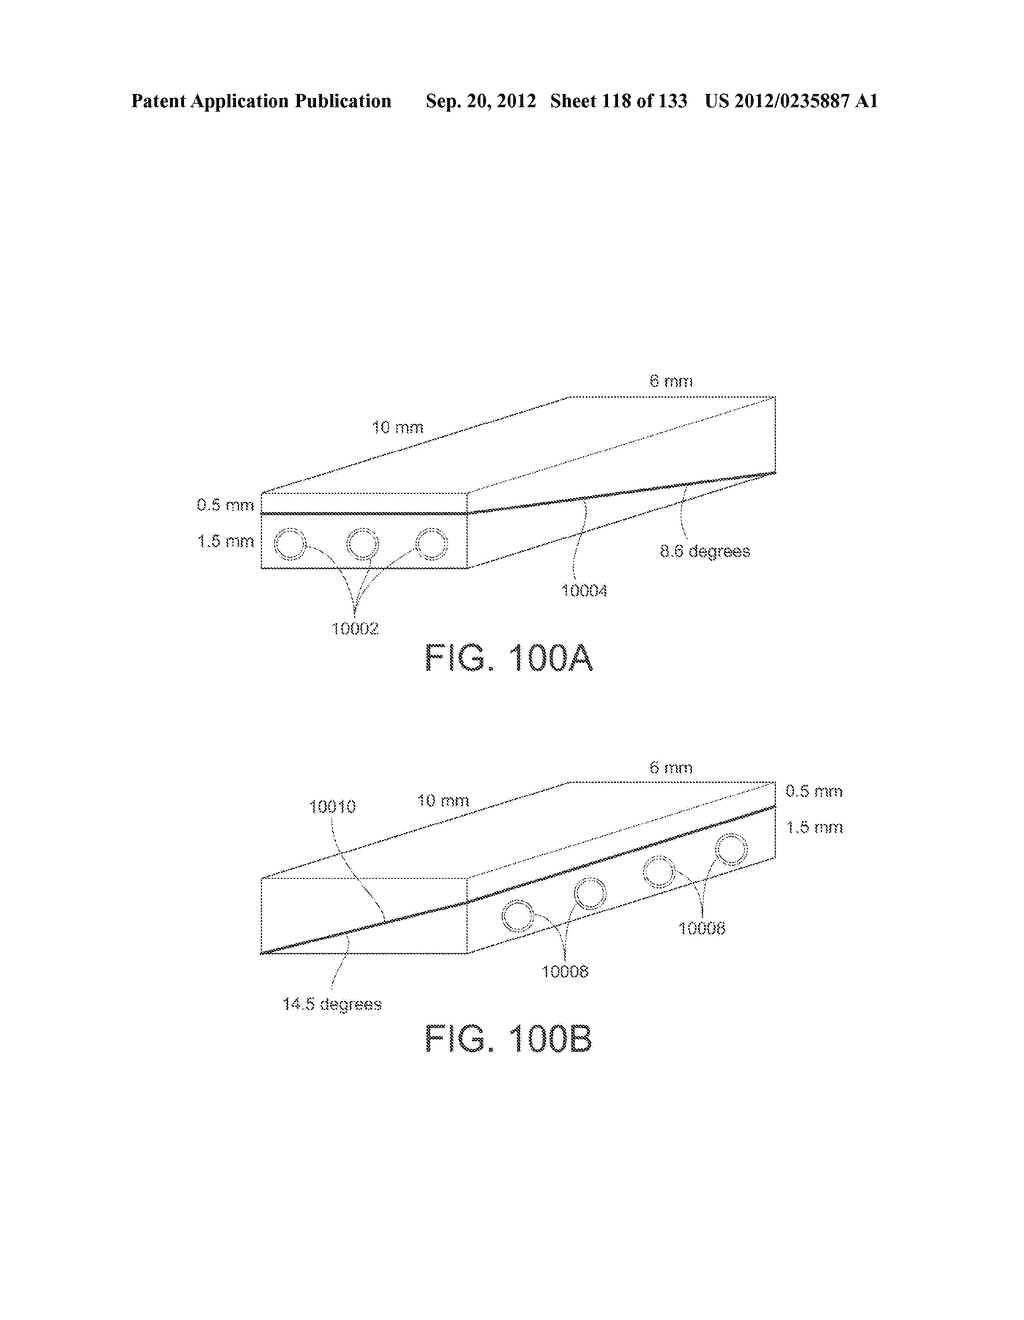 SEE-THROUGH NEAR-EYE DISPLAY GLASSES INCLUDING A PARTIALLY REFLECTIVE,     PARTIALLY TRANSMITTING OPTICAL ELEMENT AND AN OPTICALLY FLAT FILM - diagram, schematic, and image 119